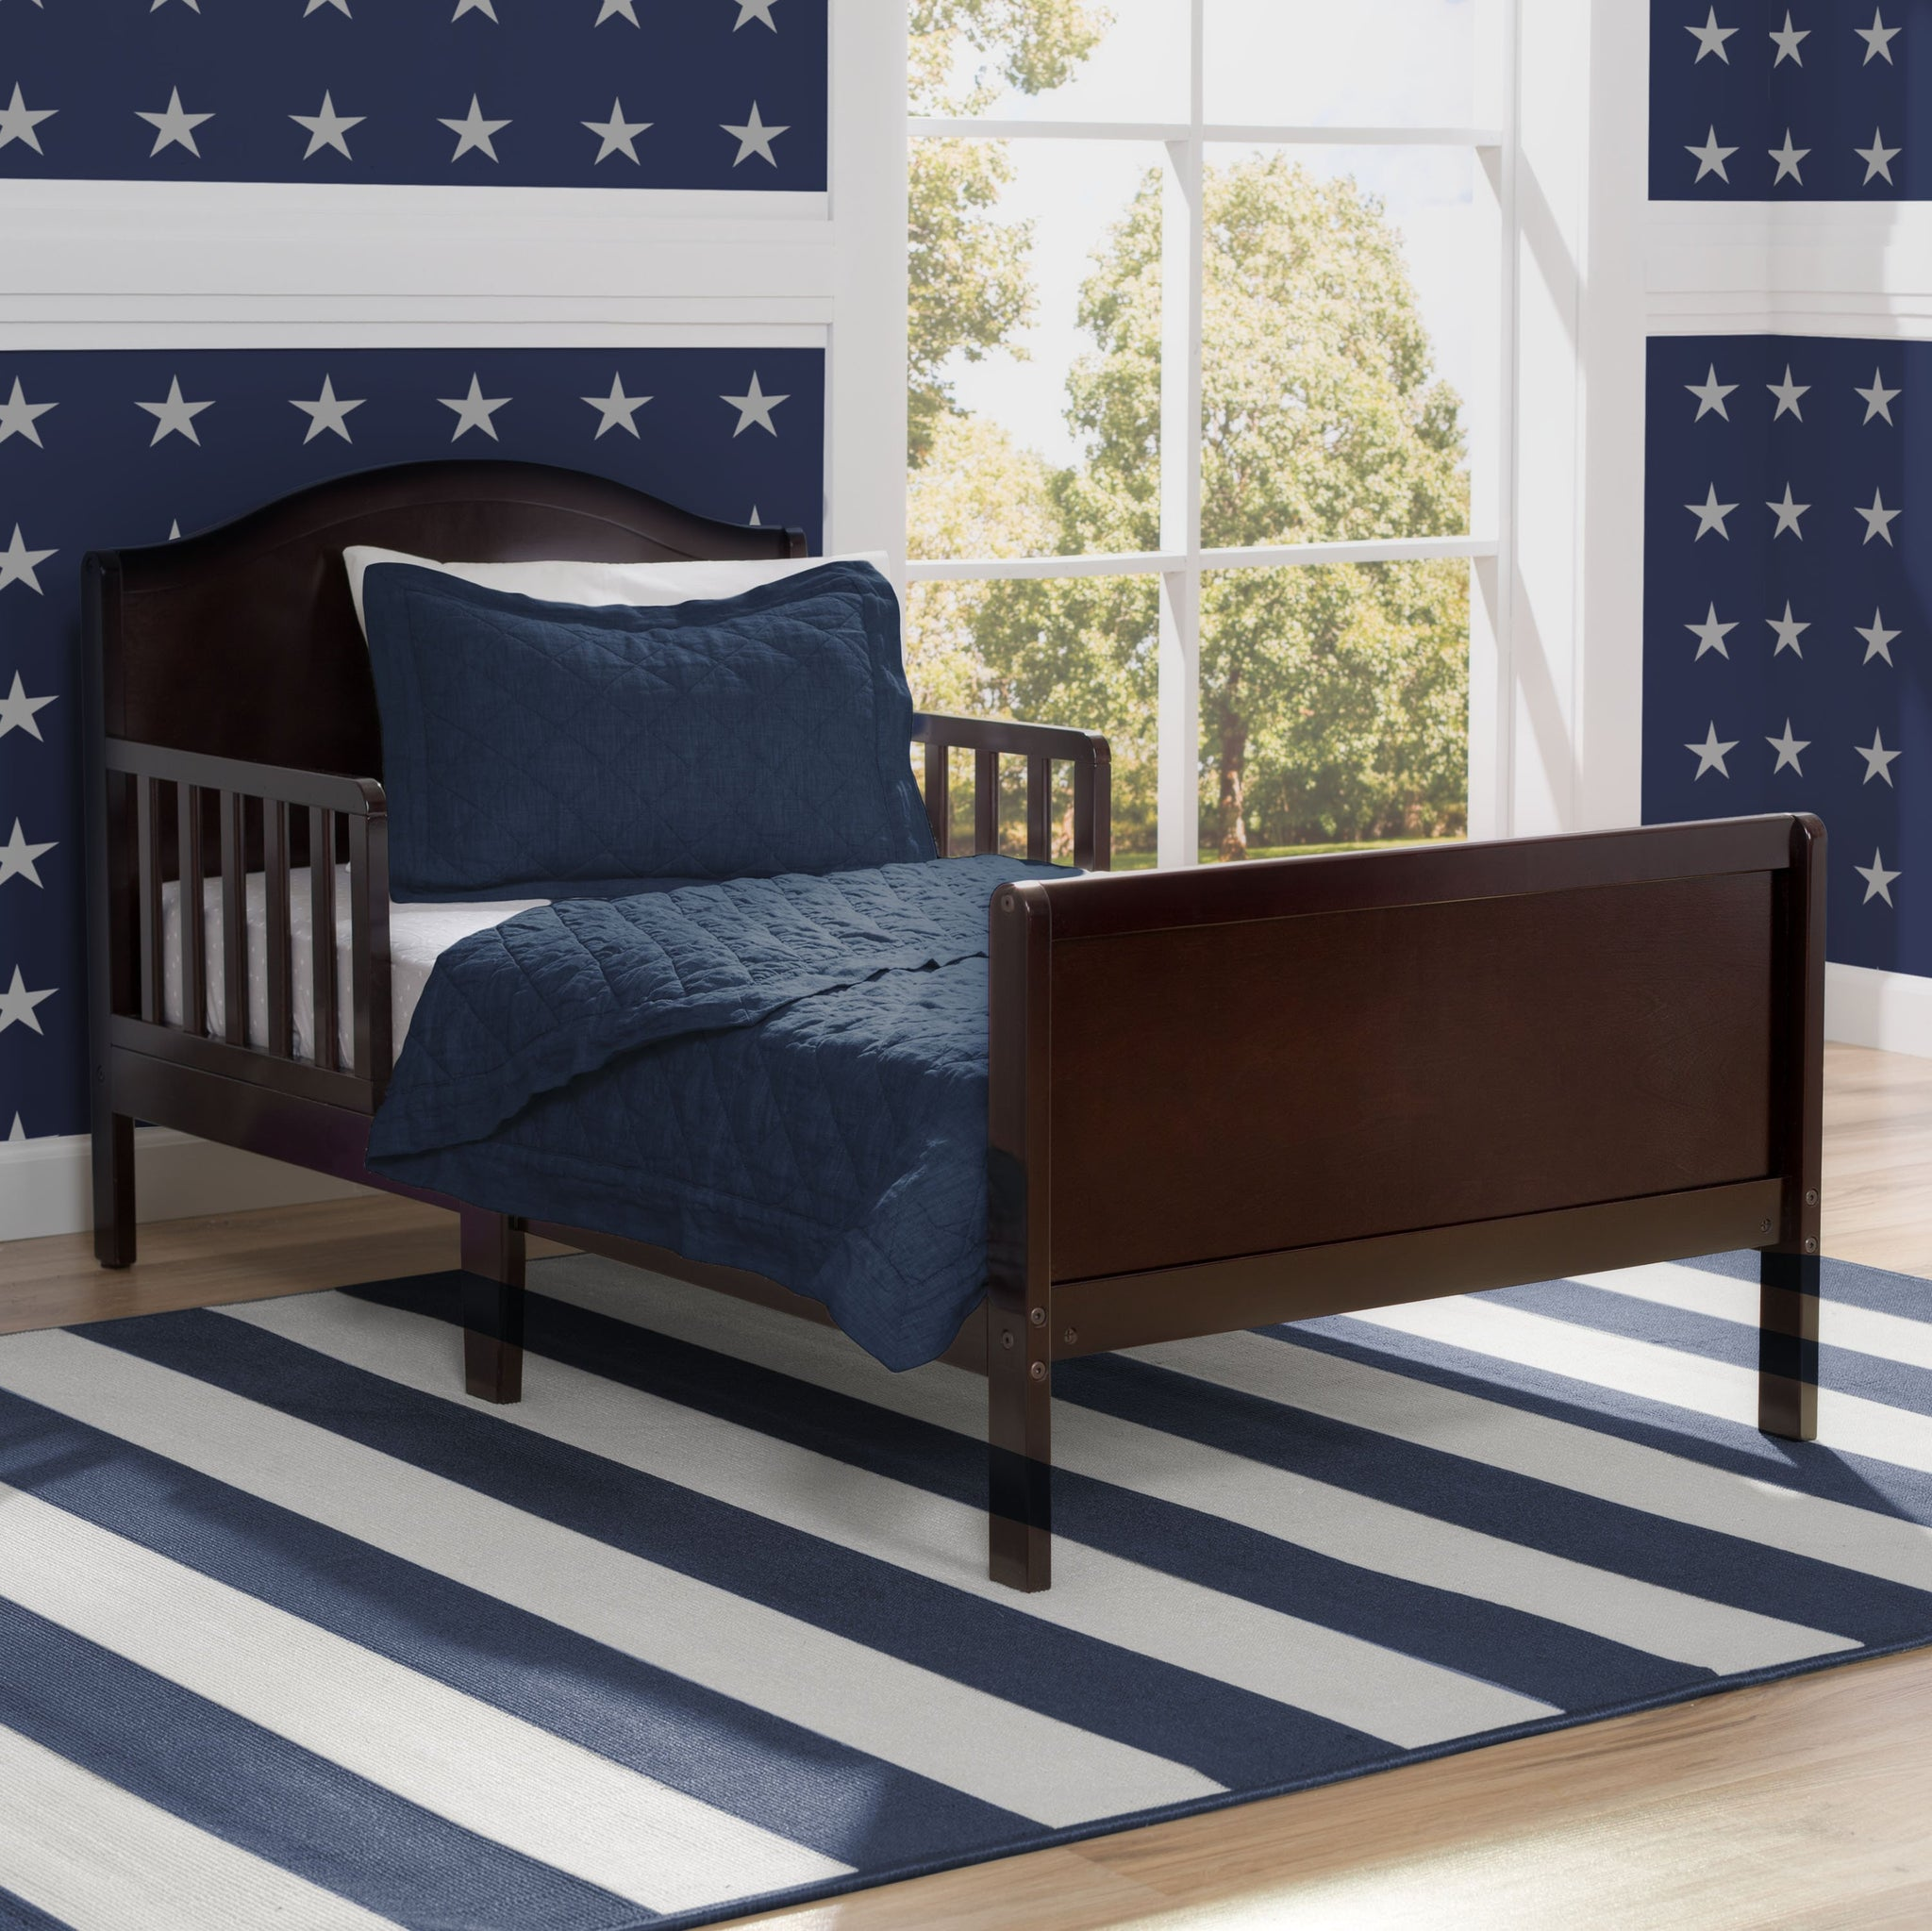 Bennett Toddler Bed